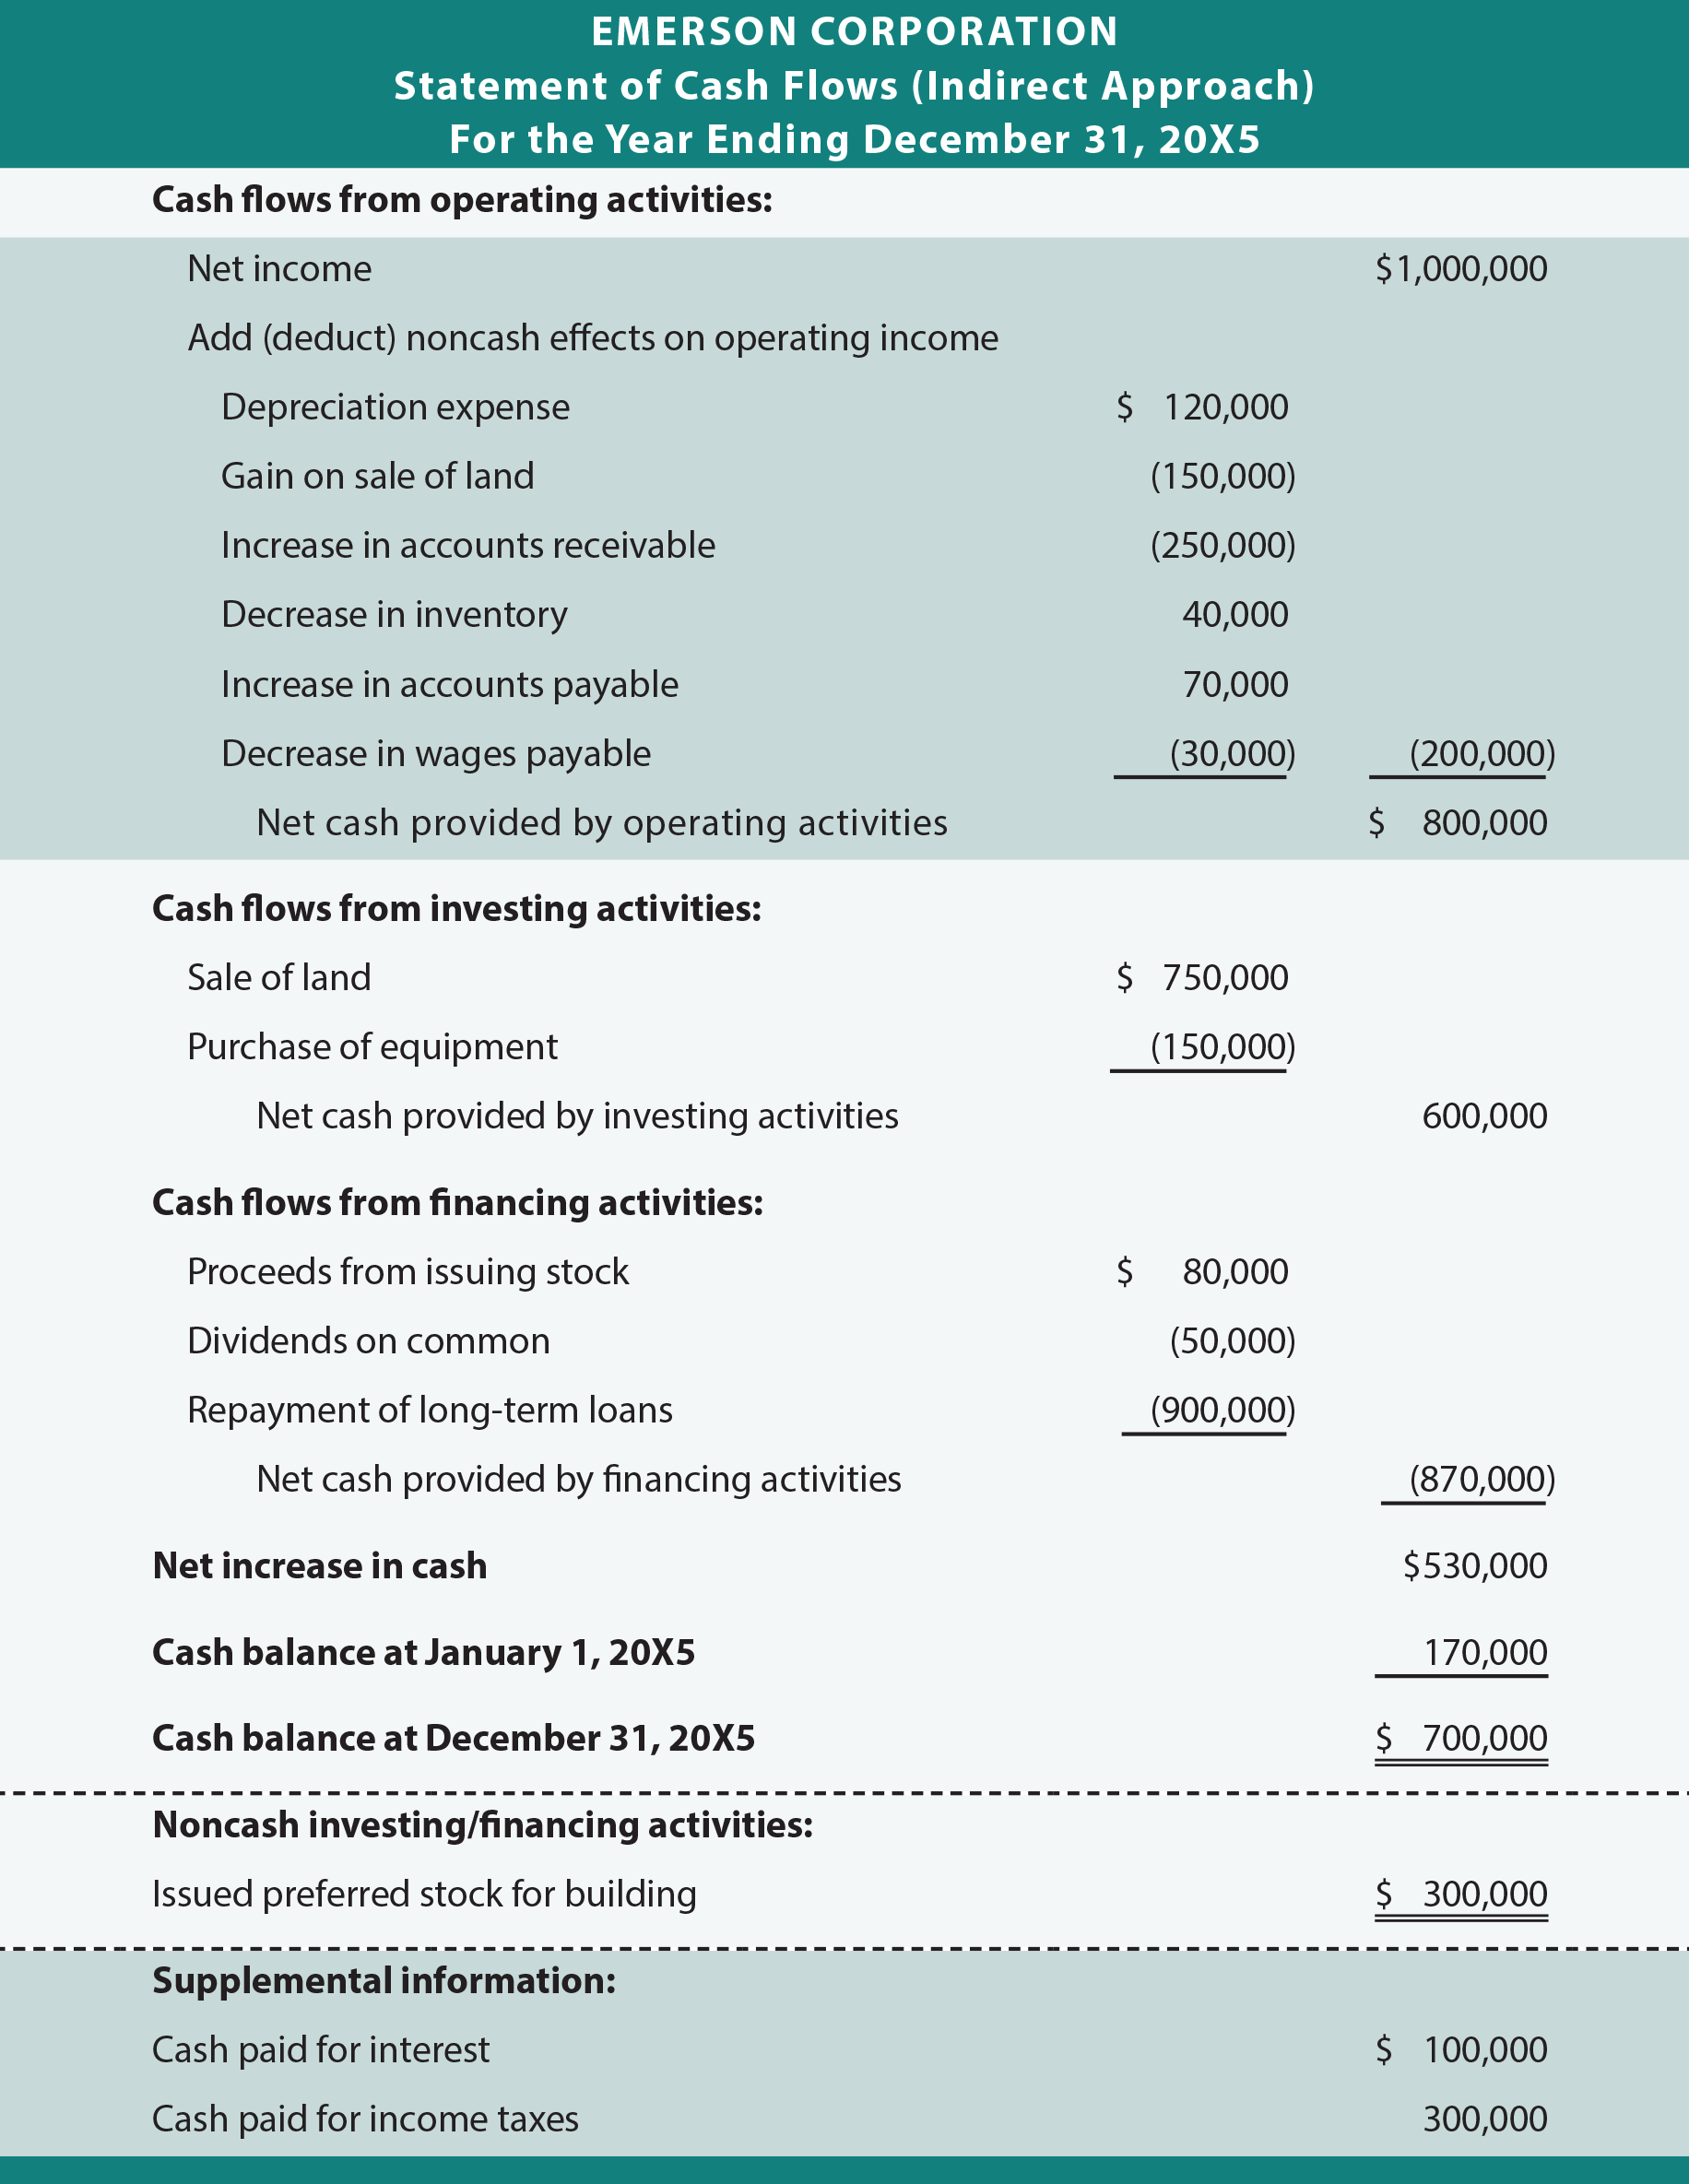 Emerson Corporation Indirect Statement of Cash Flows